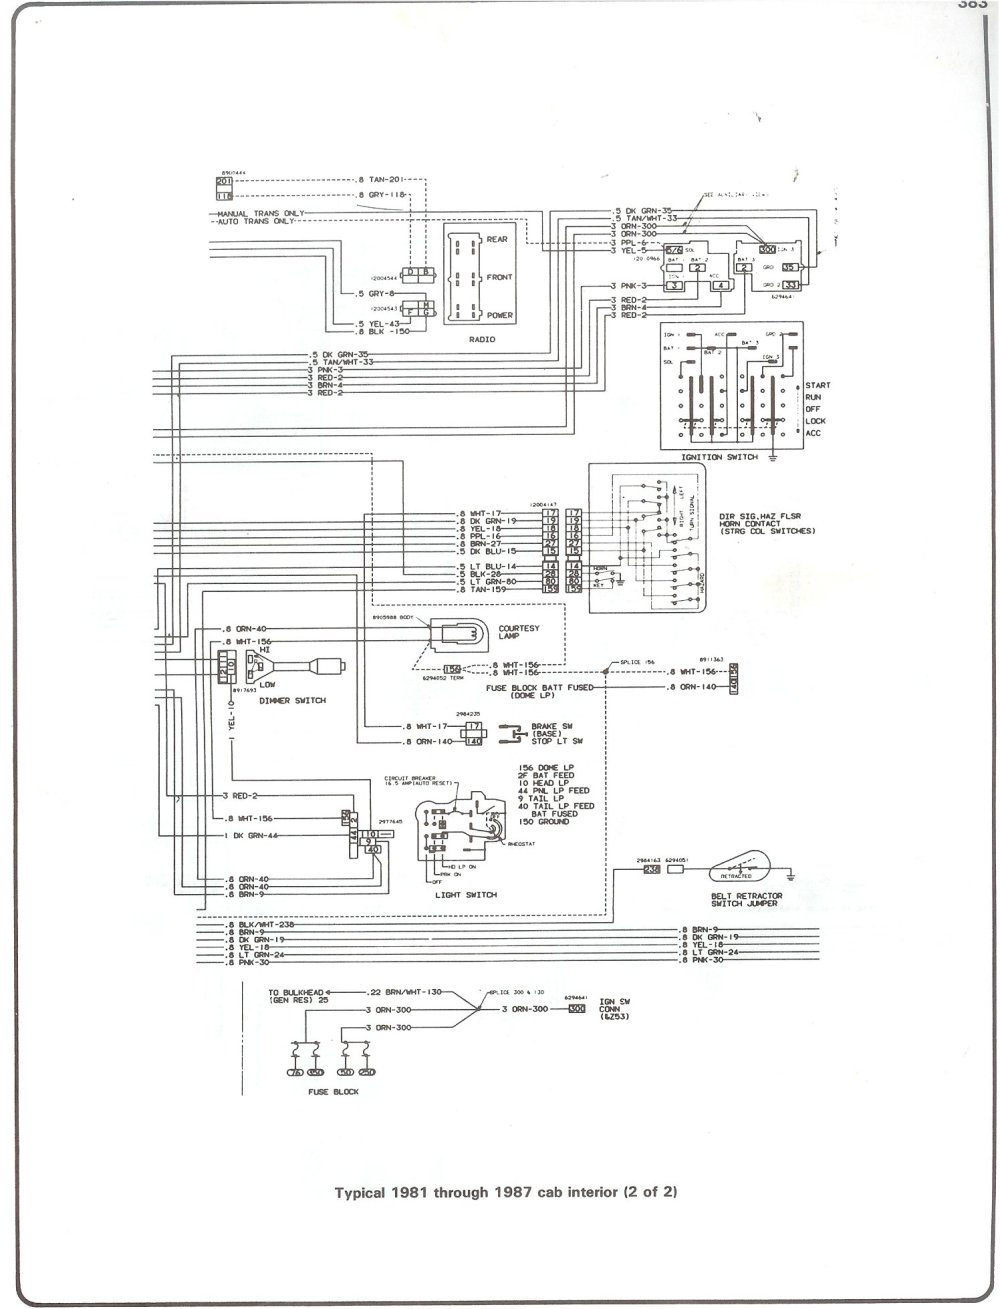 medium resolution of complete 73 87 wiring diagrams 2000 chevy blazer wiring diagram 1976 chevy blazer wiring diagram